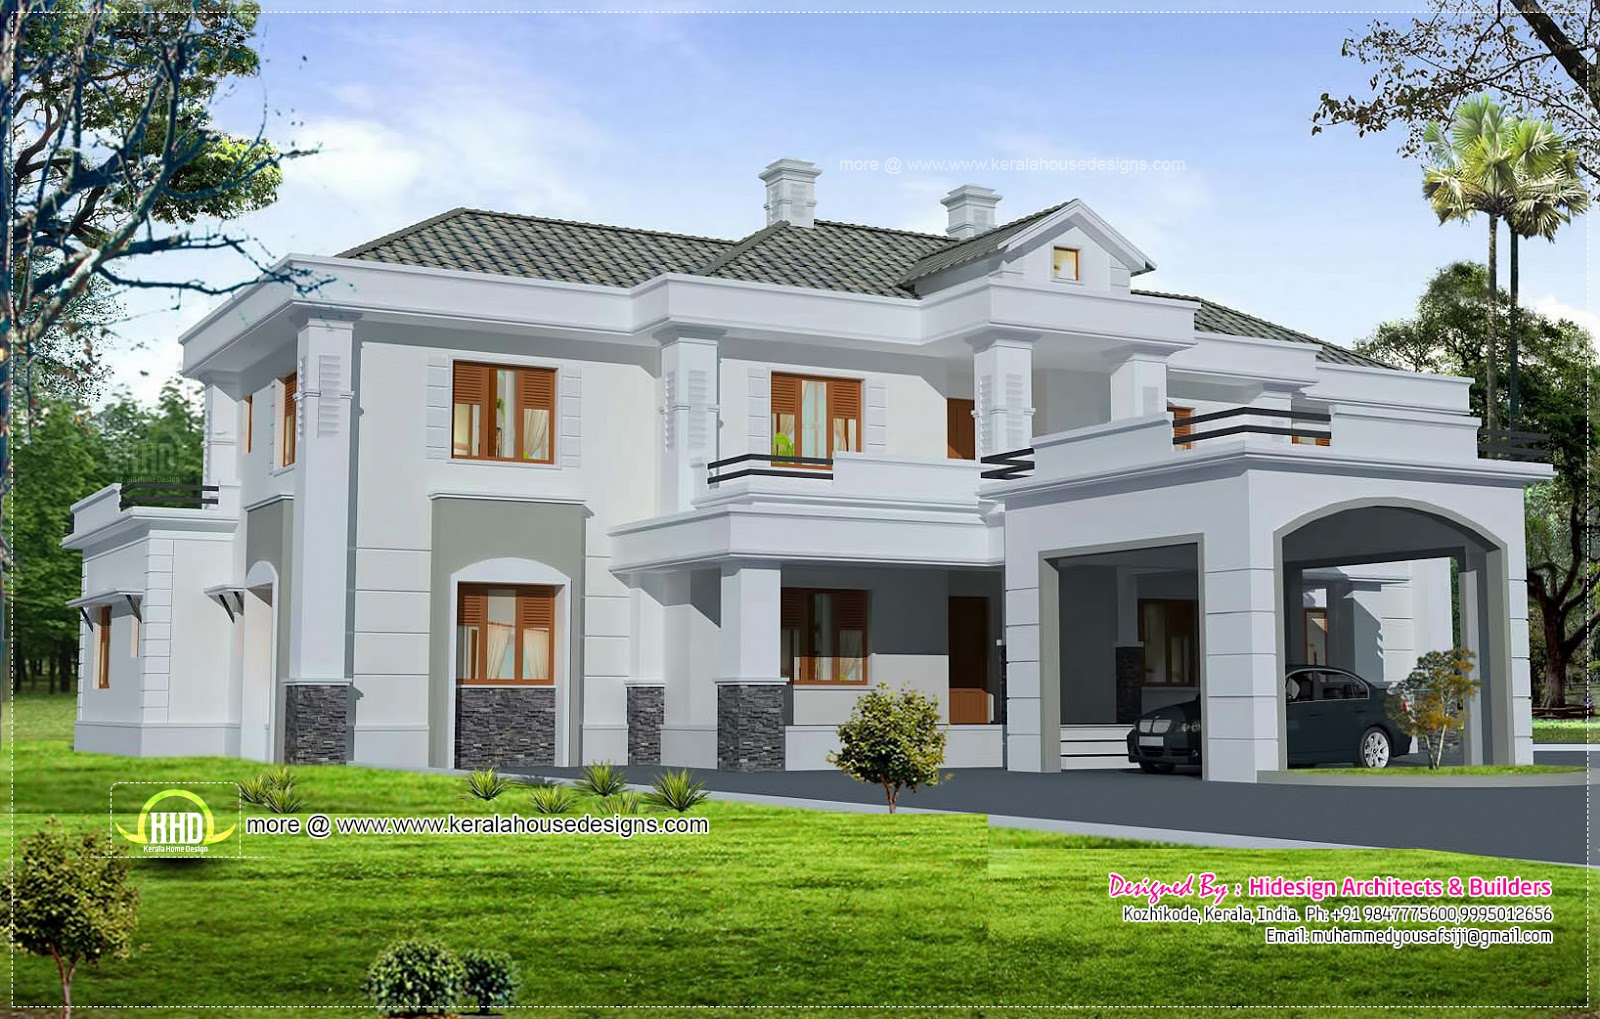 Luxury colonial style home design with court yard kerala Colonial style house